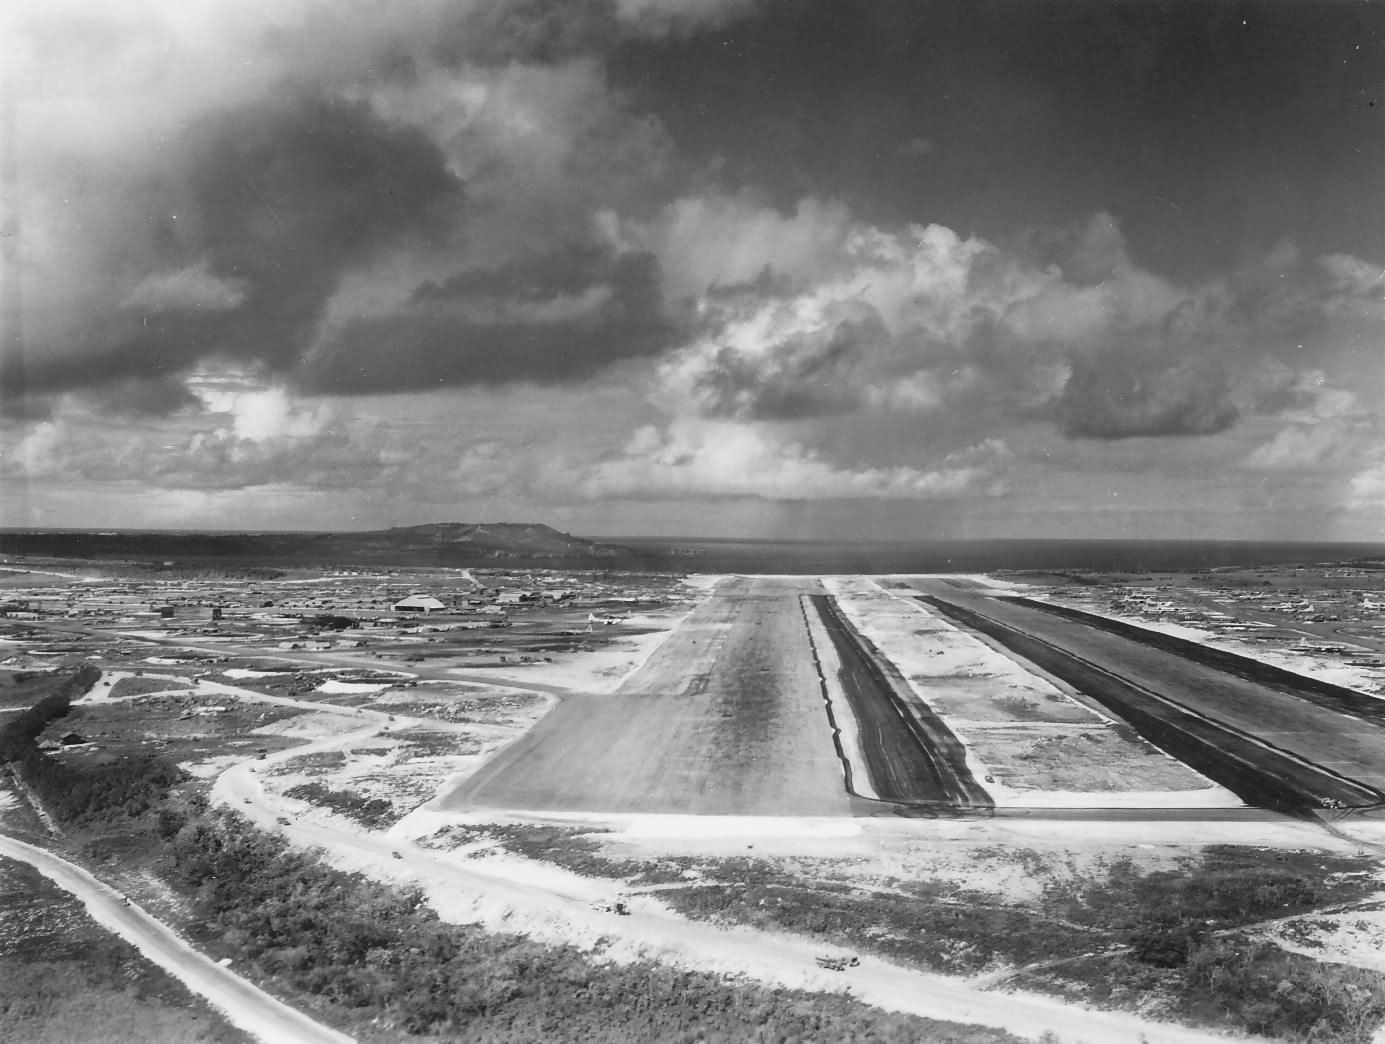 B-29 bombers base Isley airfield SAIPAN